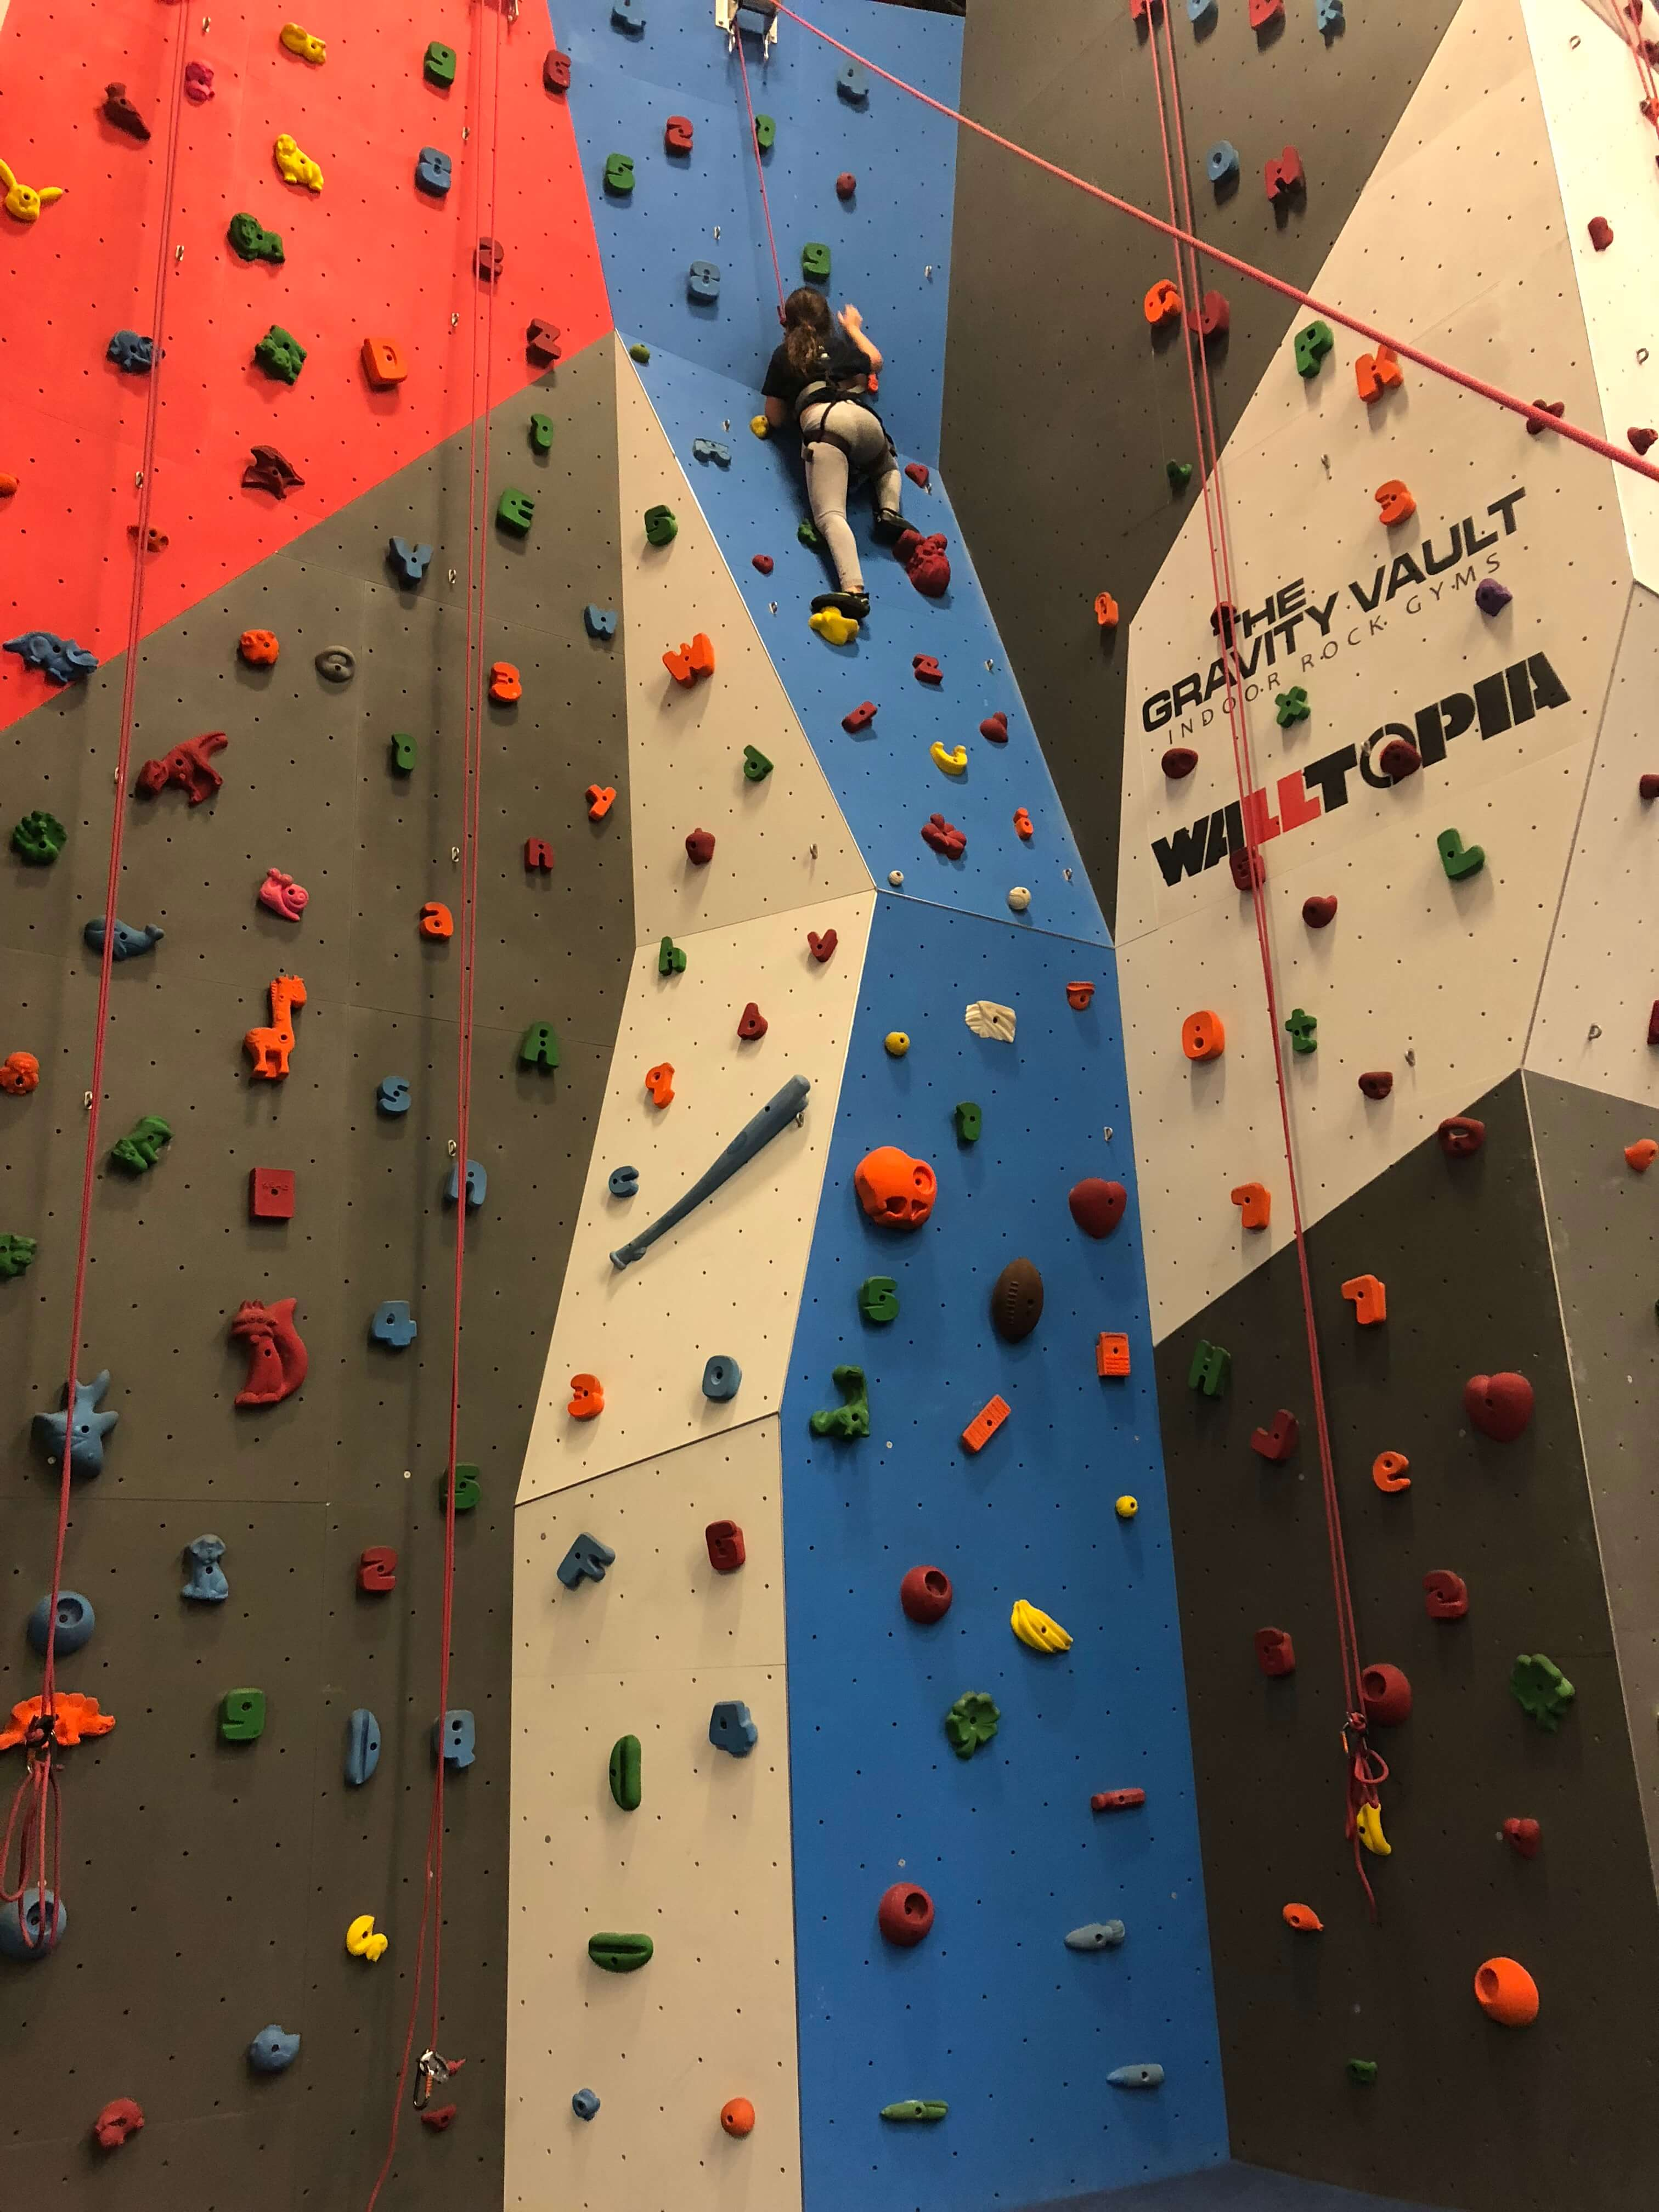 the Gravity Vault in dutchess county